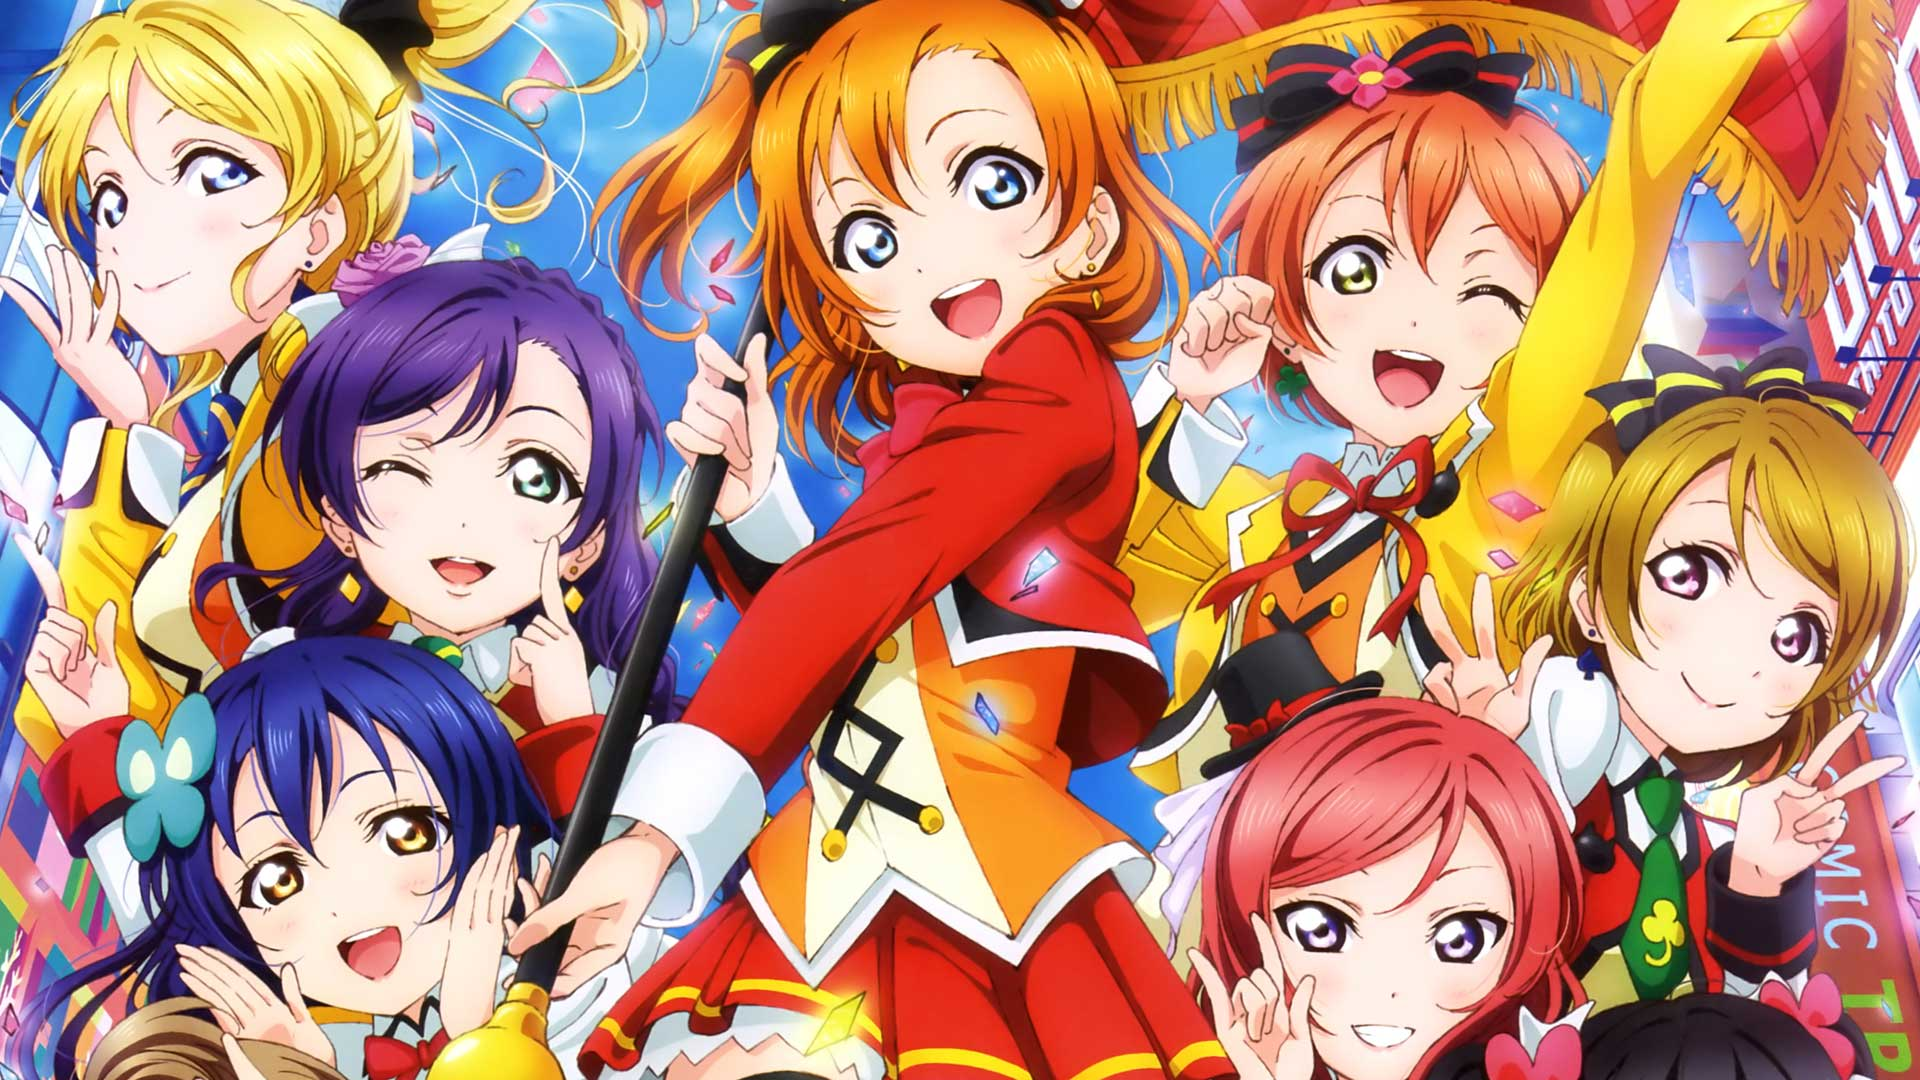 Love Live! The School Idol Movie Review